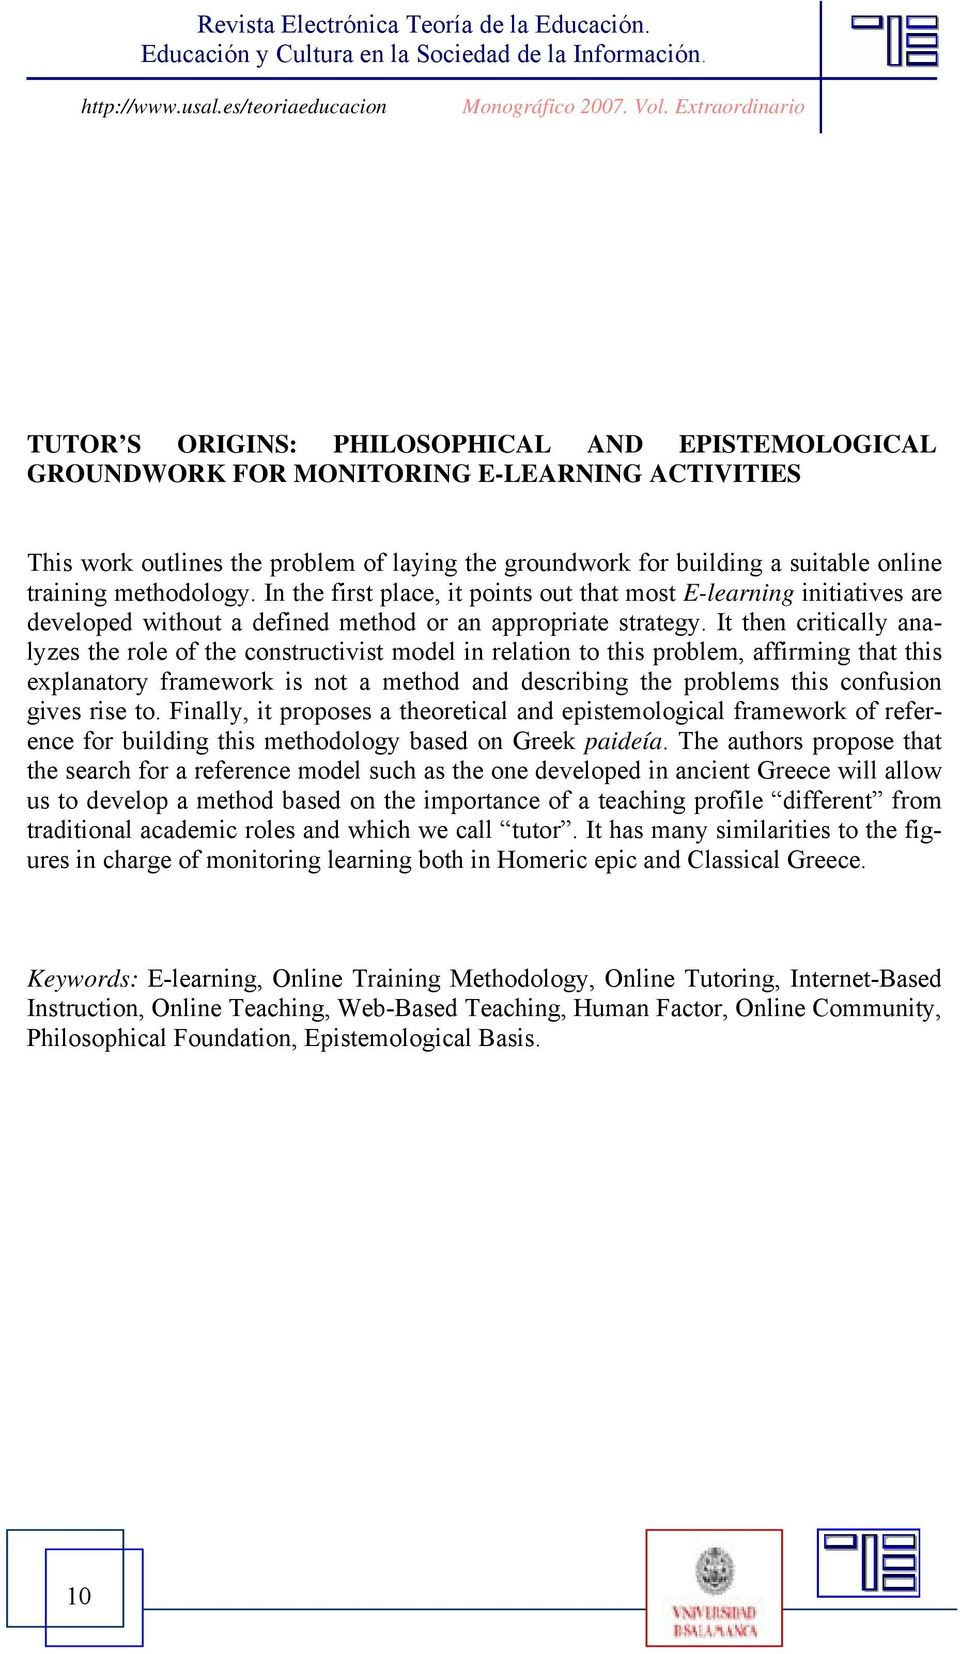 It then critically analyzes the role of the constructivist model in relation to this problem, affirming that this explanatory framework is not a method and describing the problems this confusion